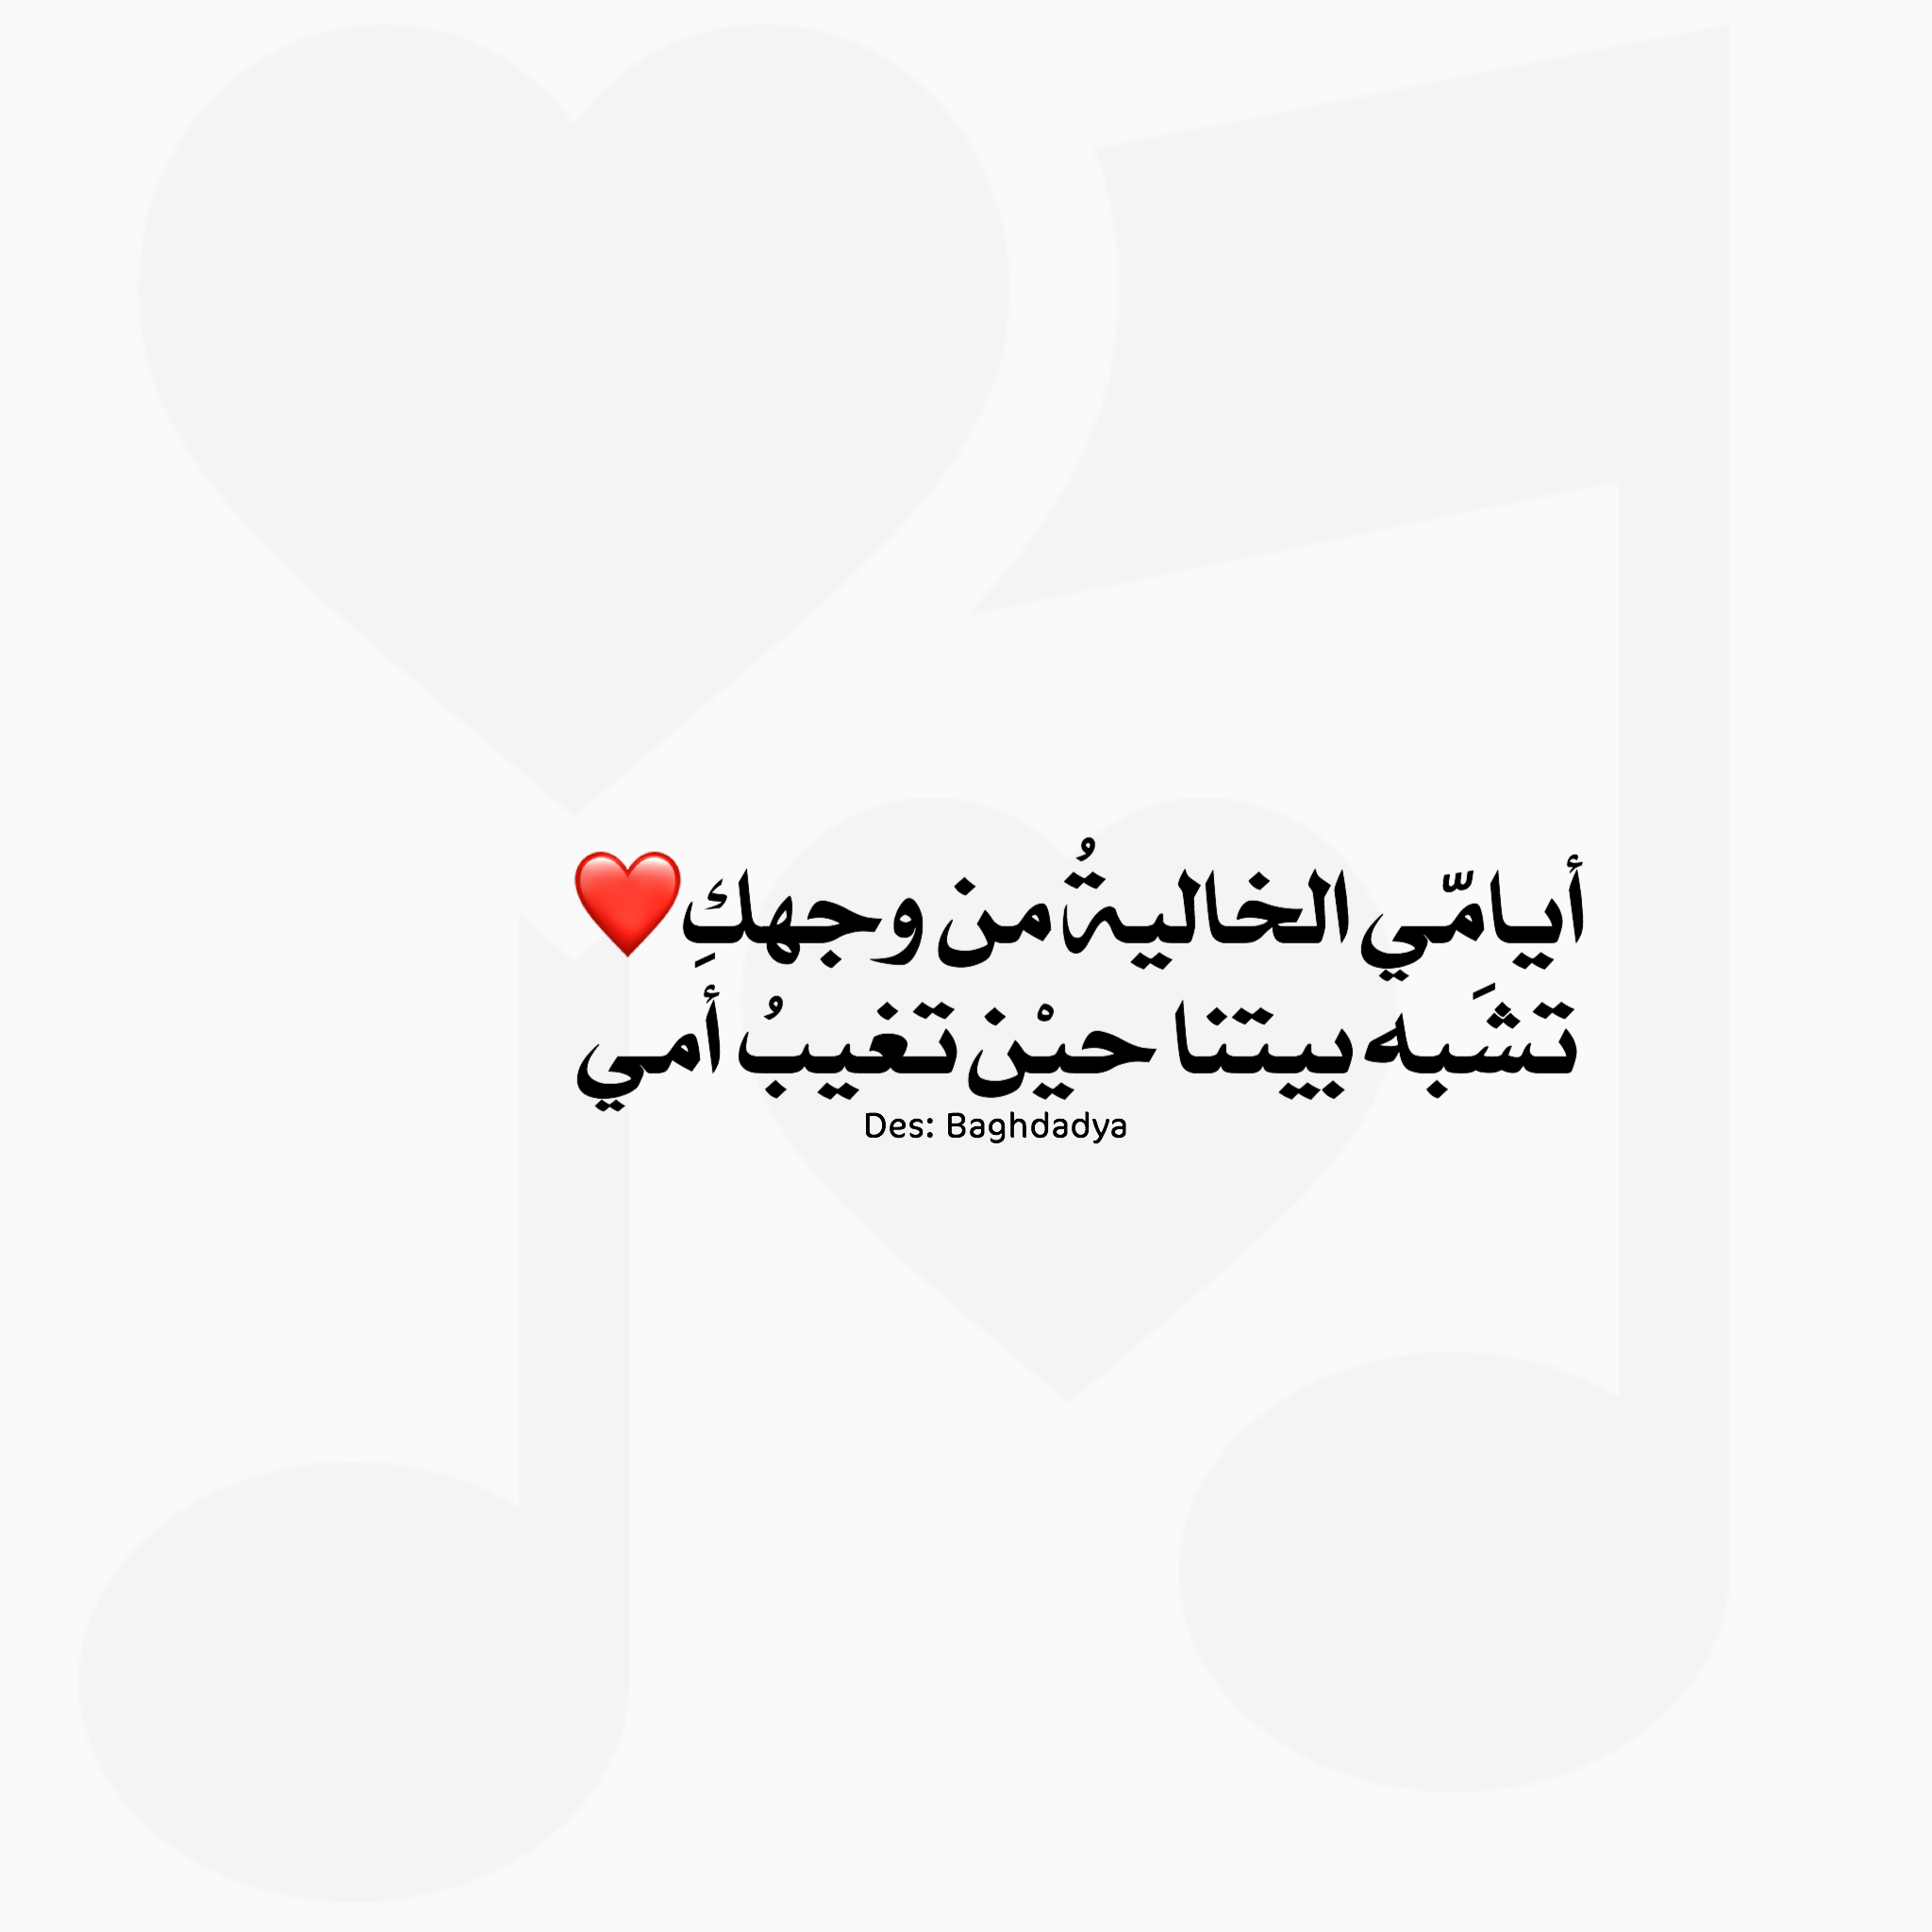 Pin By Moatazhassan On رمزيات Funny Texts Beautiful Arabic Words Words